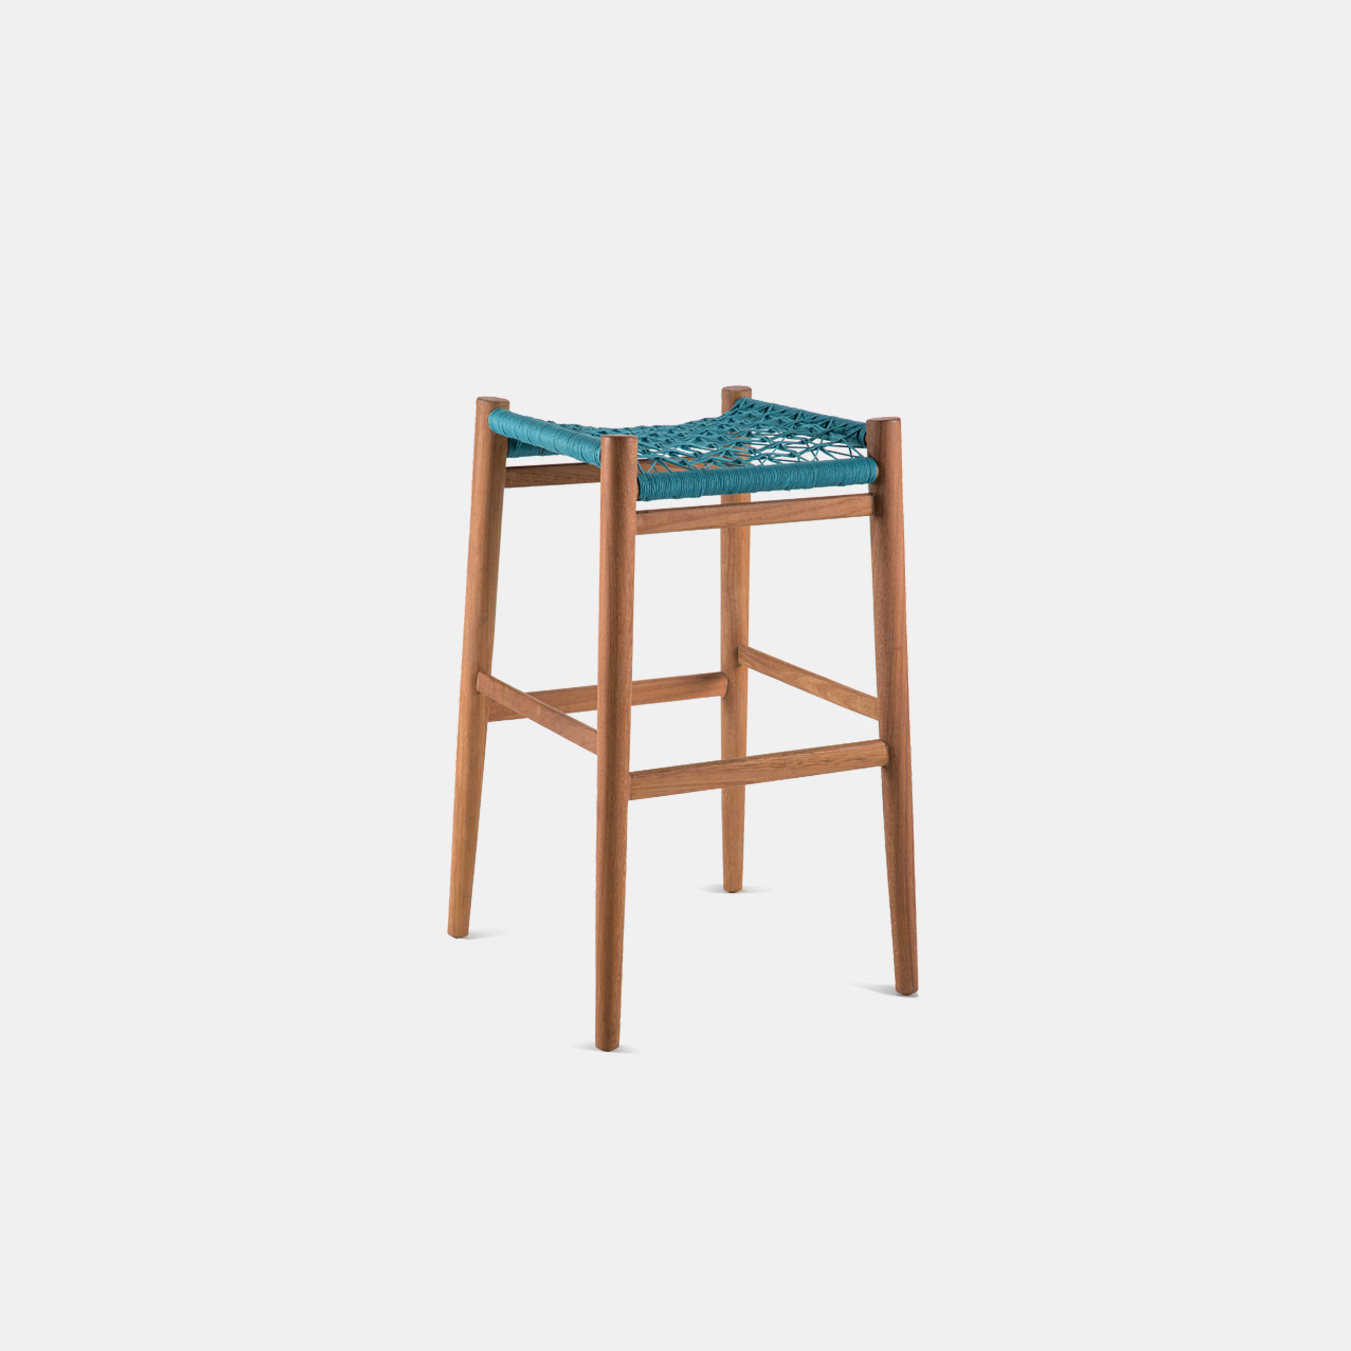 "The Nguni Backless Barstool 31.5"" by Vogel Design. Available in a selection of timbers and the woven seat is available in an assortment of patterns, weaves and colors."